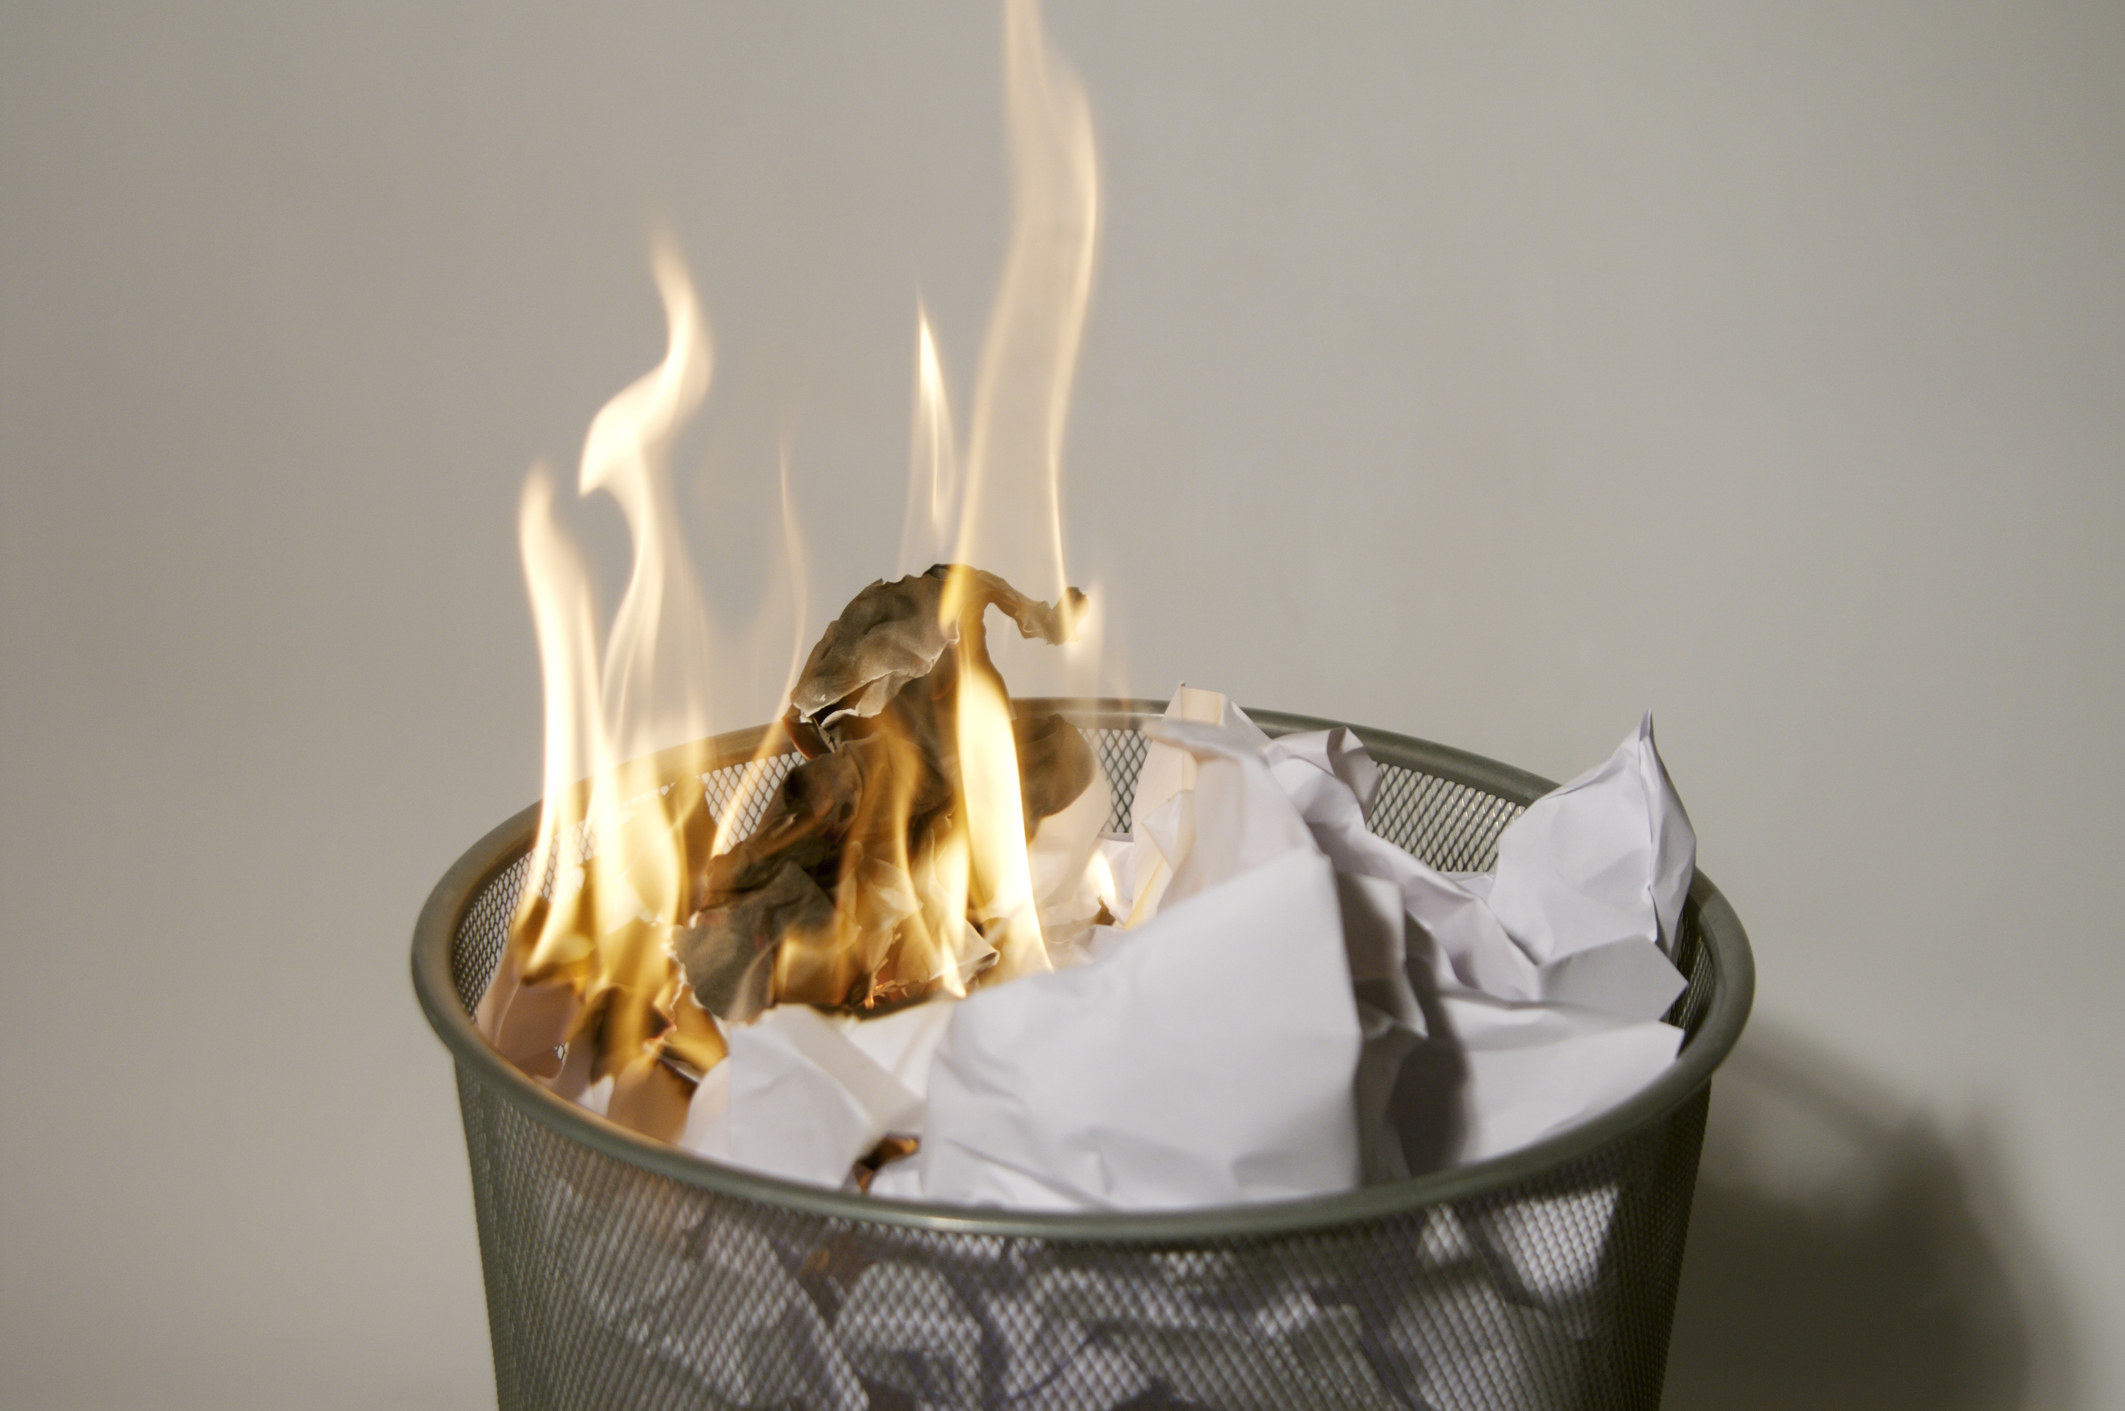 Paper burning inside of a trash can